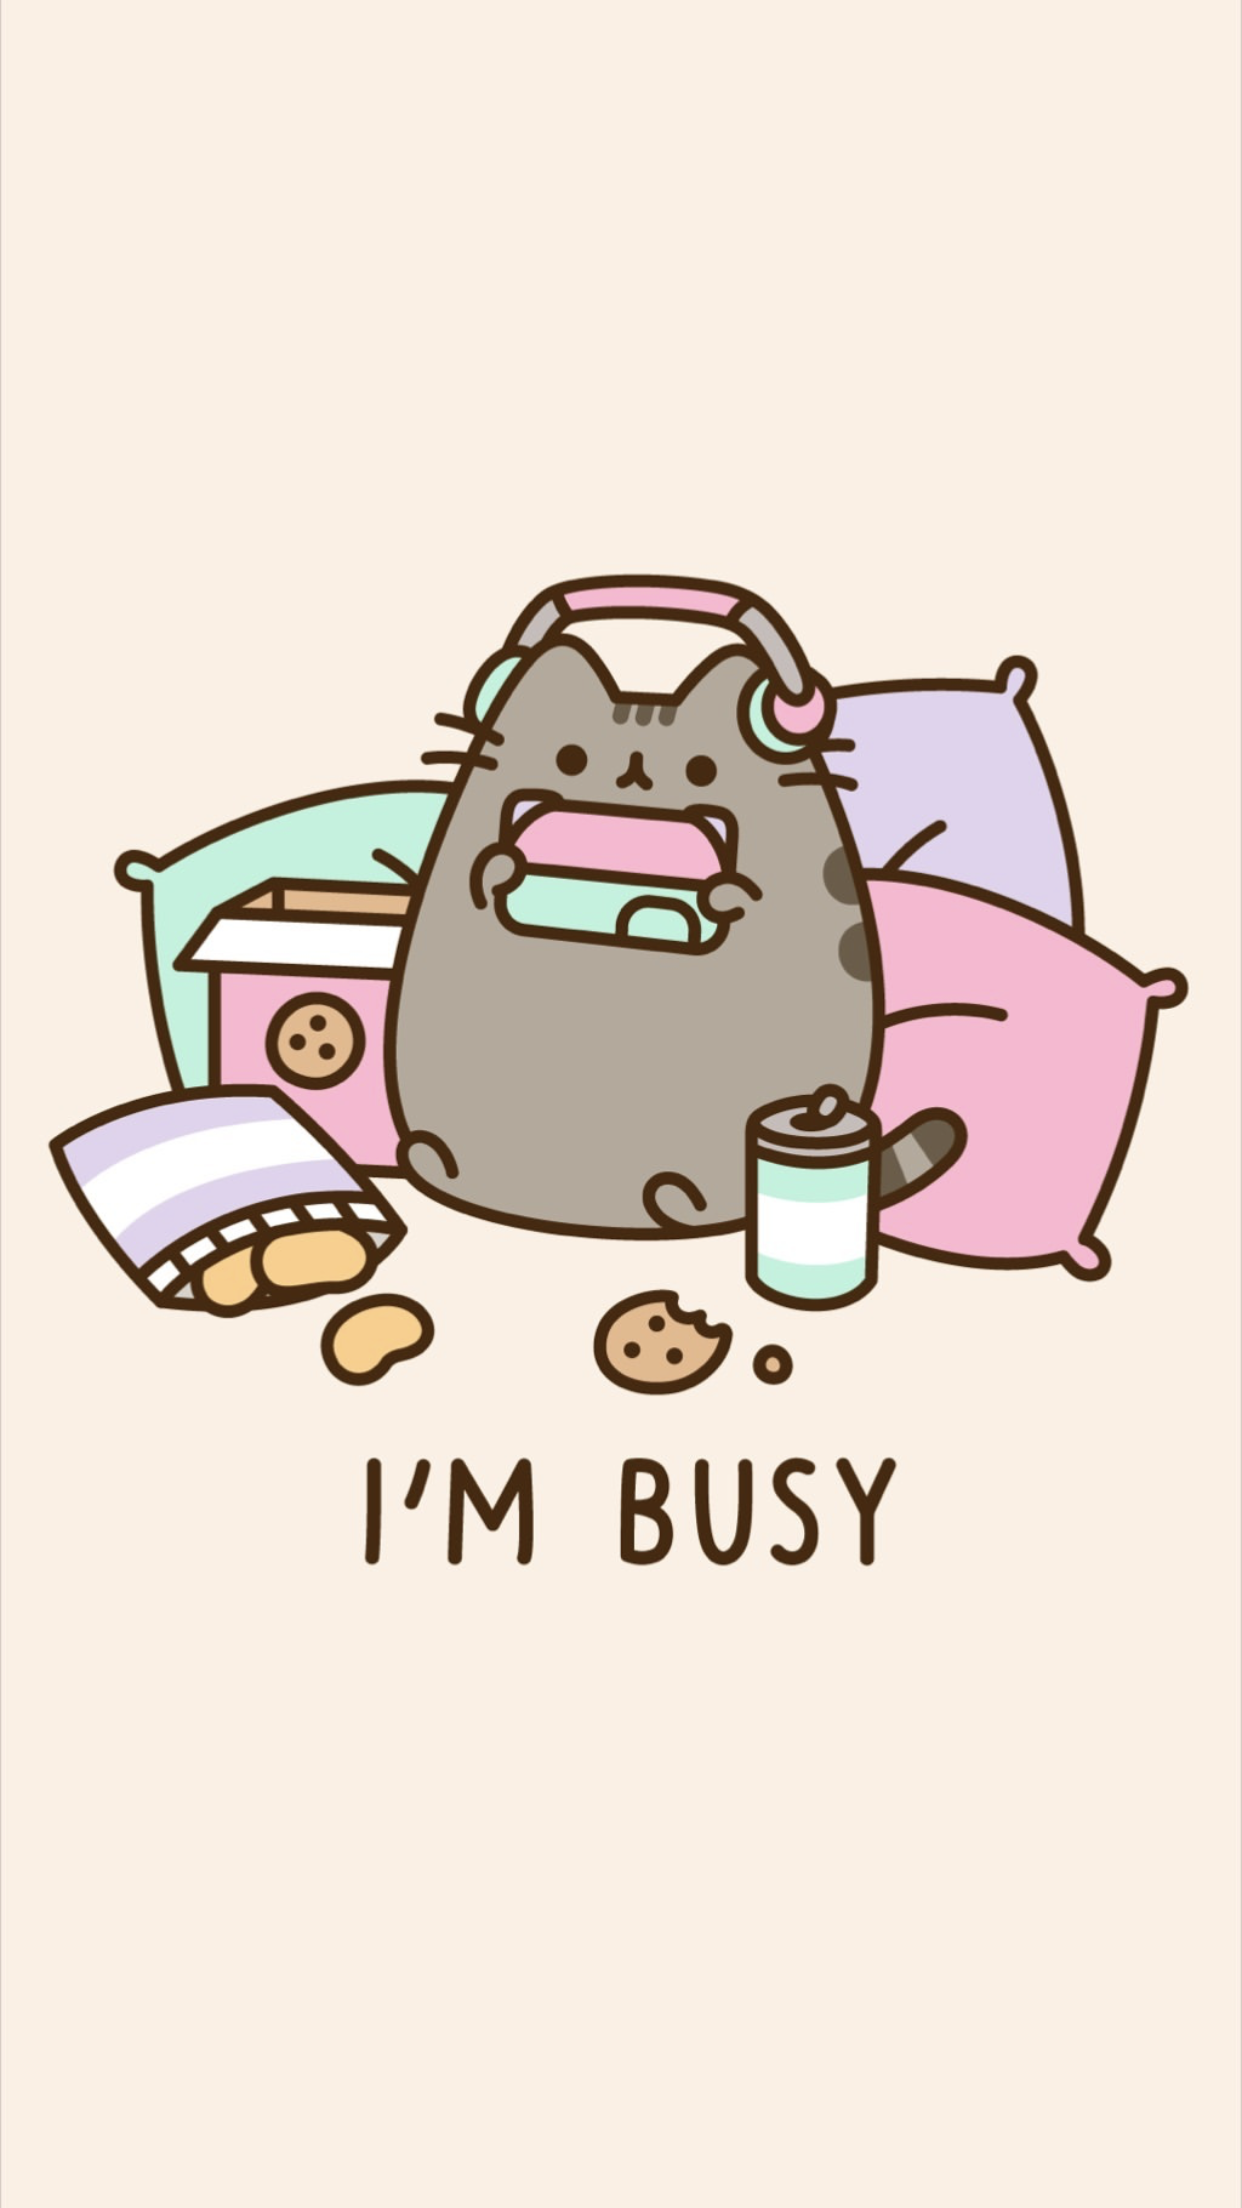 Pusheen The Cat Iphone Wallpaper Background Pusheen Gamer Kitty Cikartma Star Wars Sanati Doodle Desenleri